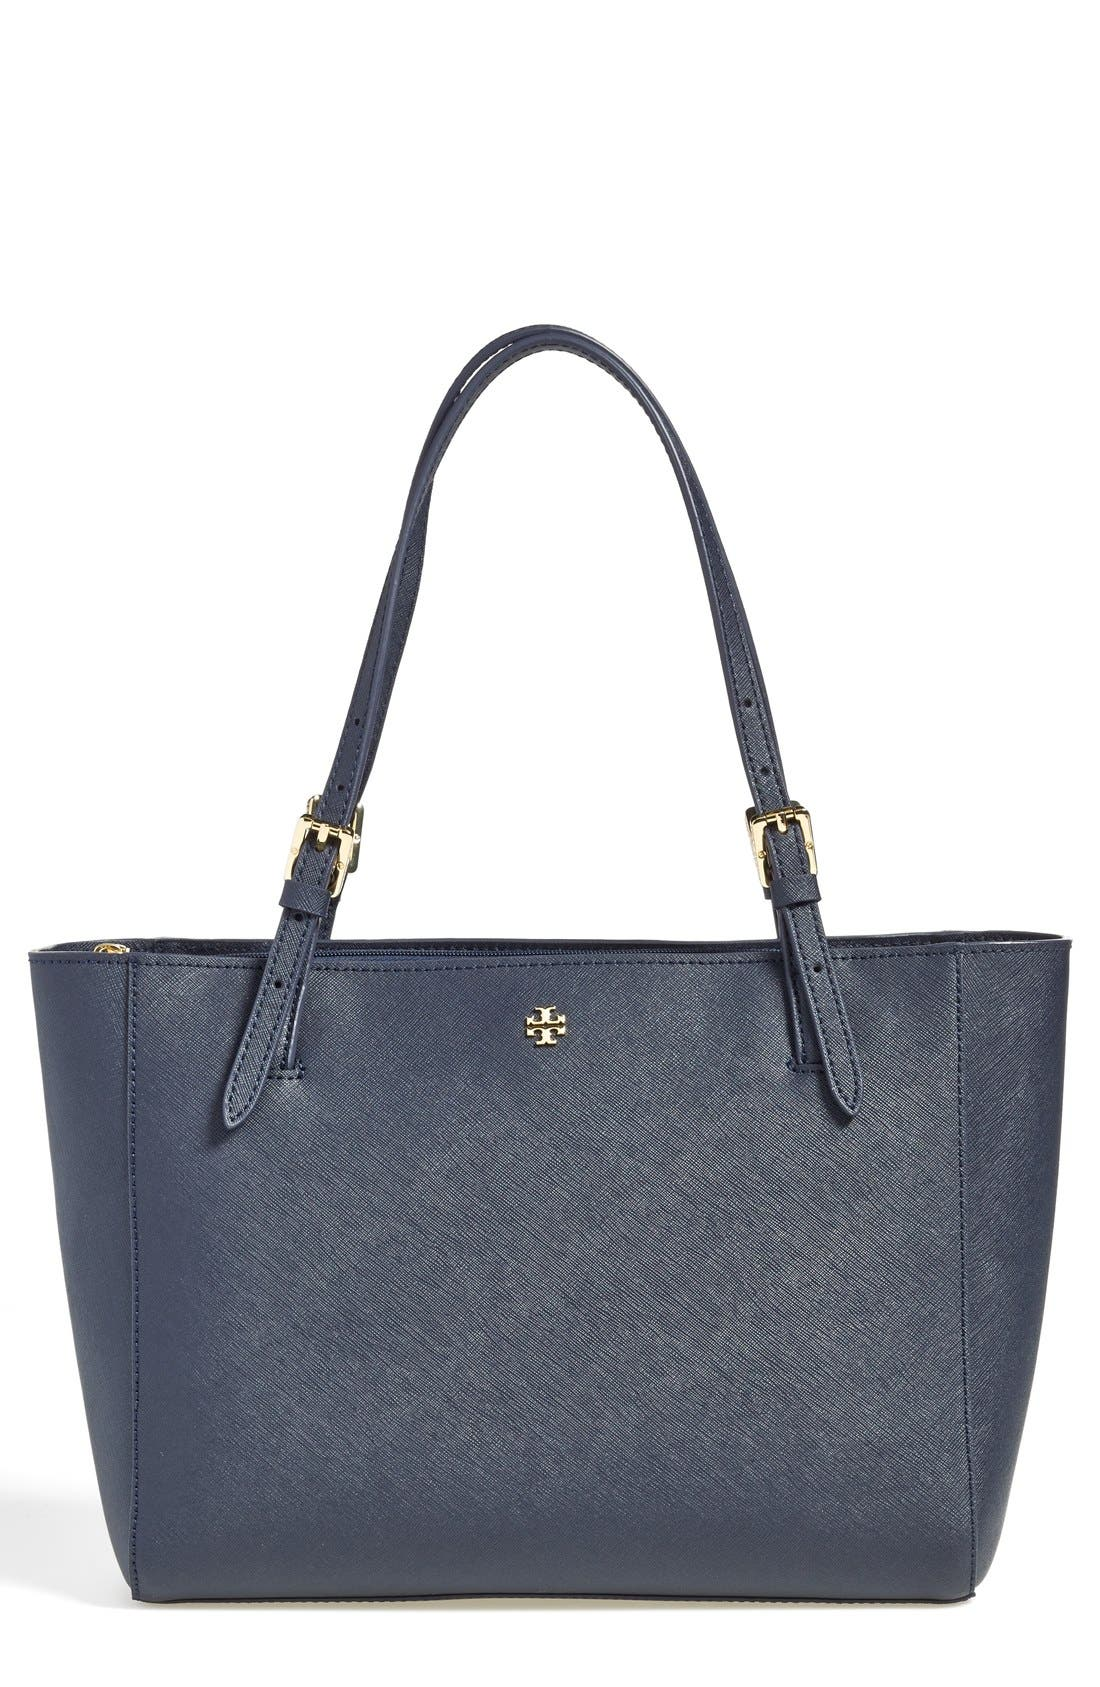 Alternate Image 1 Selected - Tory Burch 'Small York' Saffiano Leather Buckle Tote